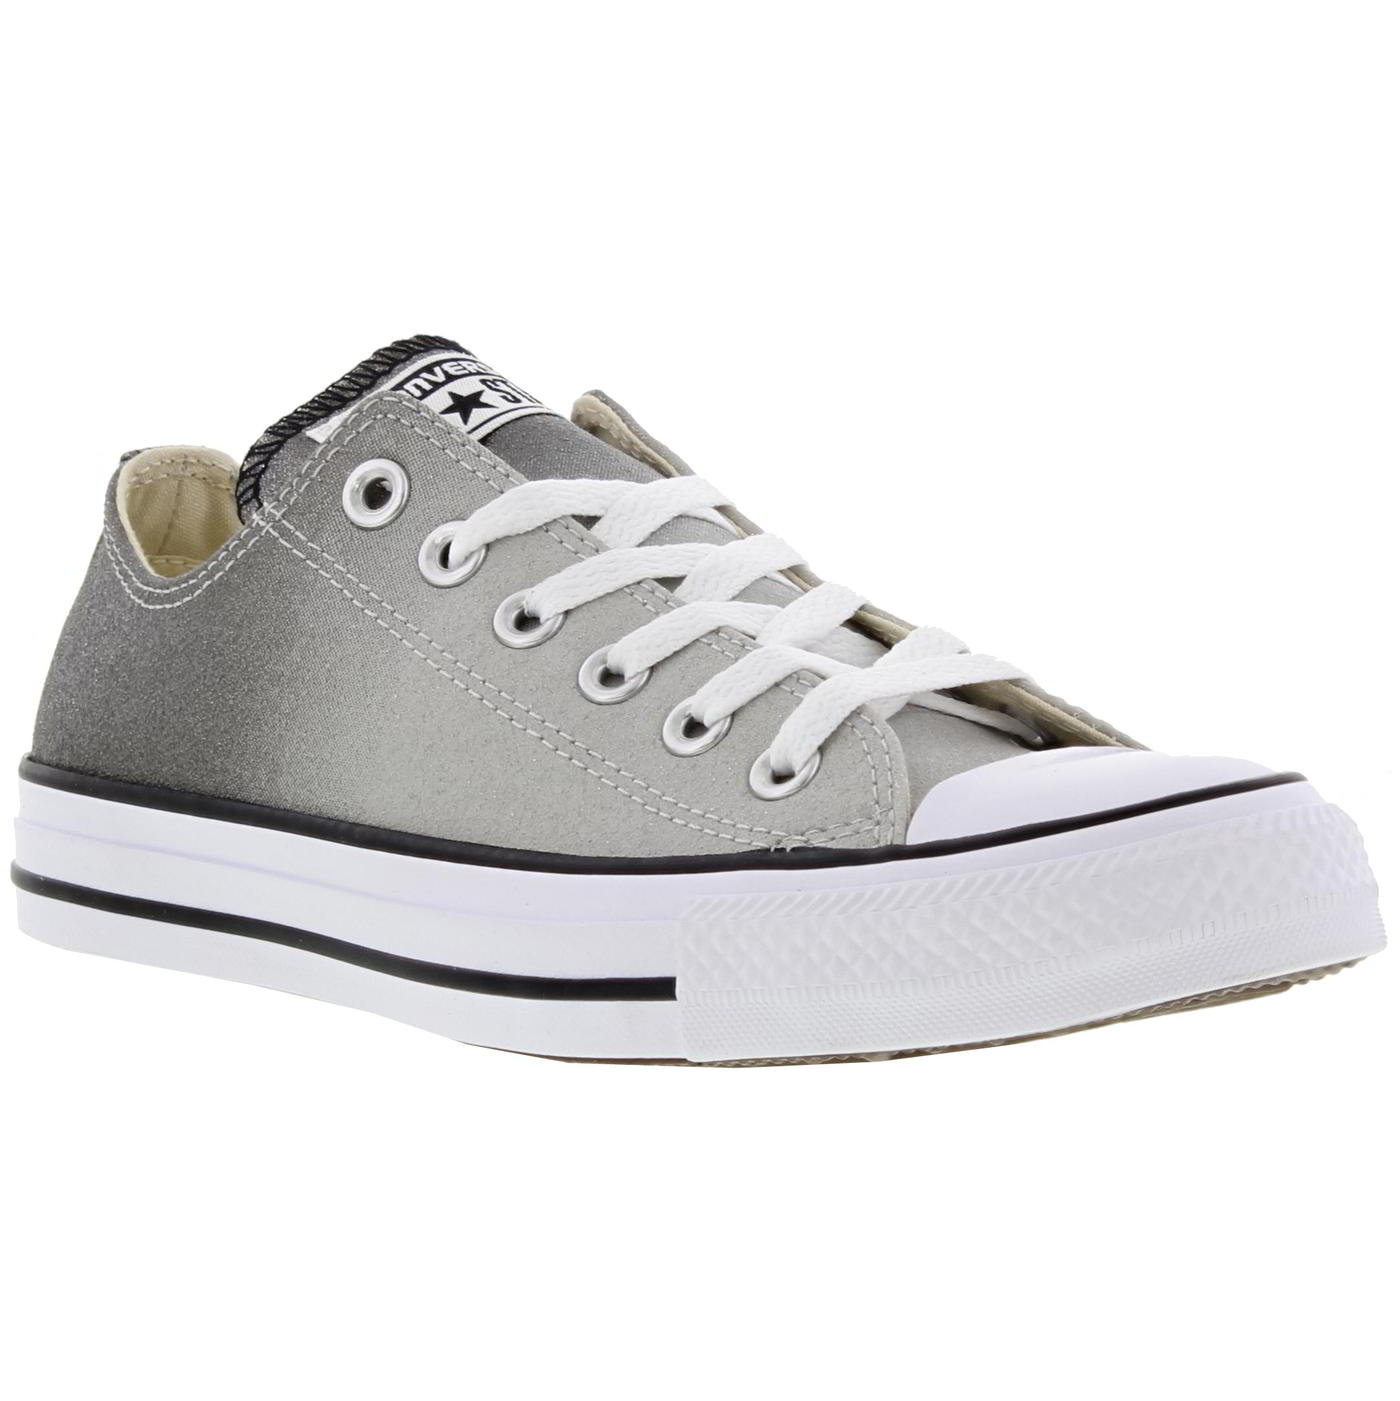 e7cbbc5ca2e9 Details about Converse CT All Star Oxford Womens Ladies Ox Canvas Trainers  Shoes Size 4-8